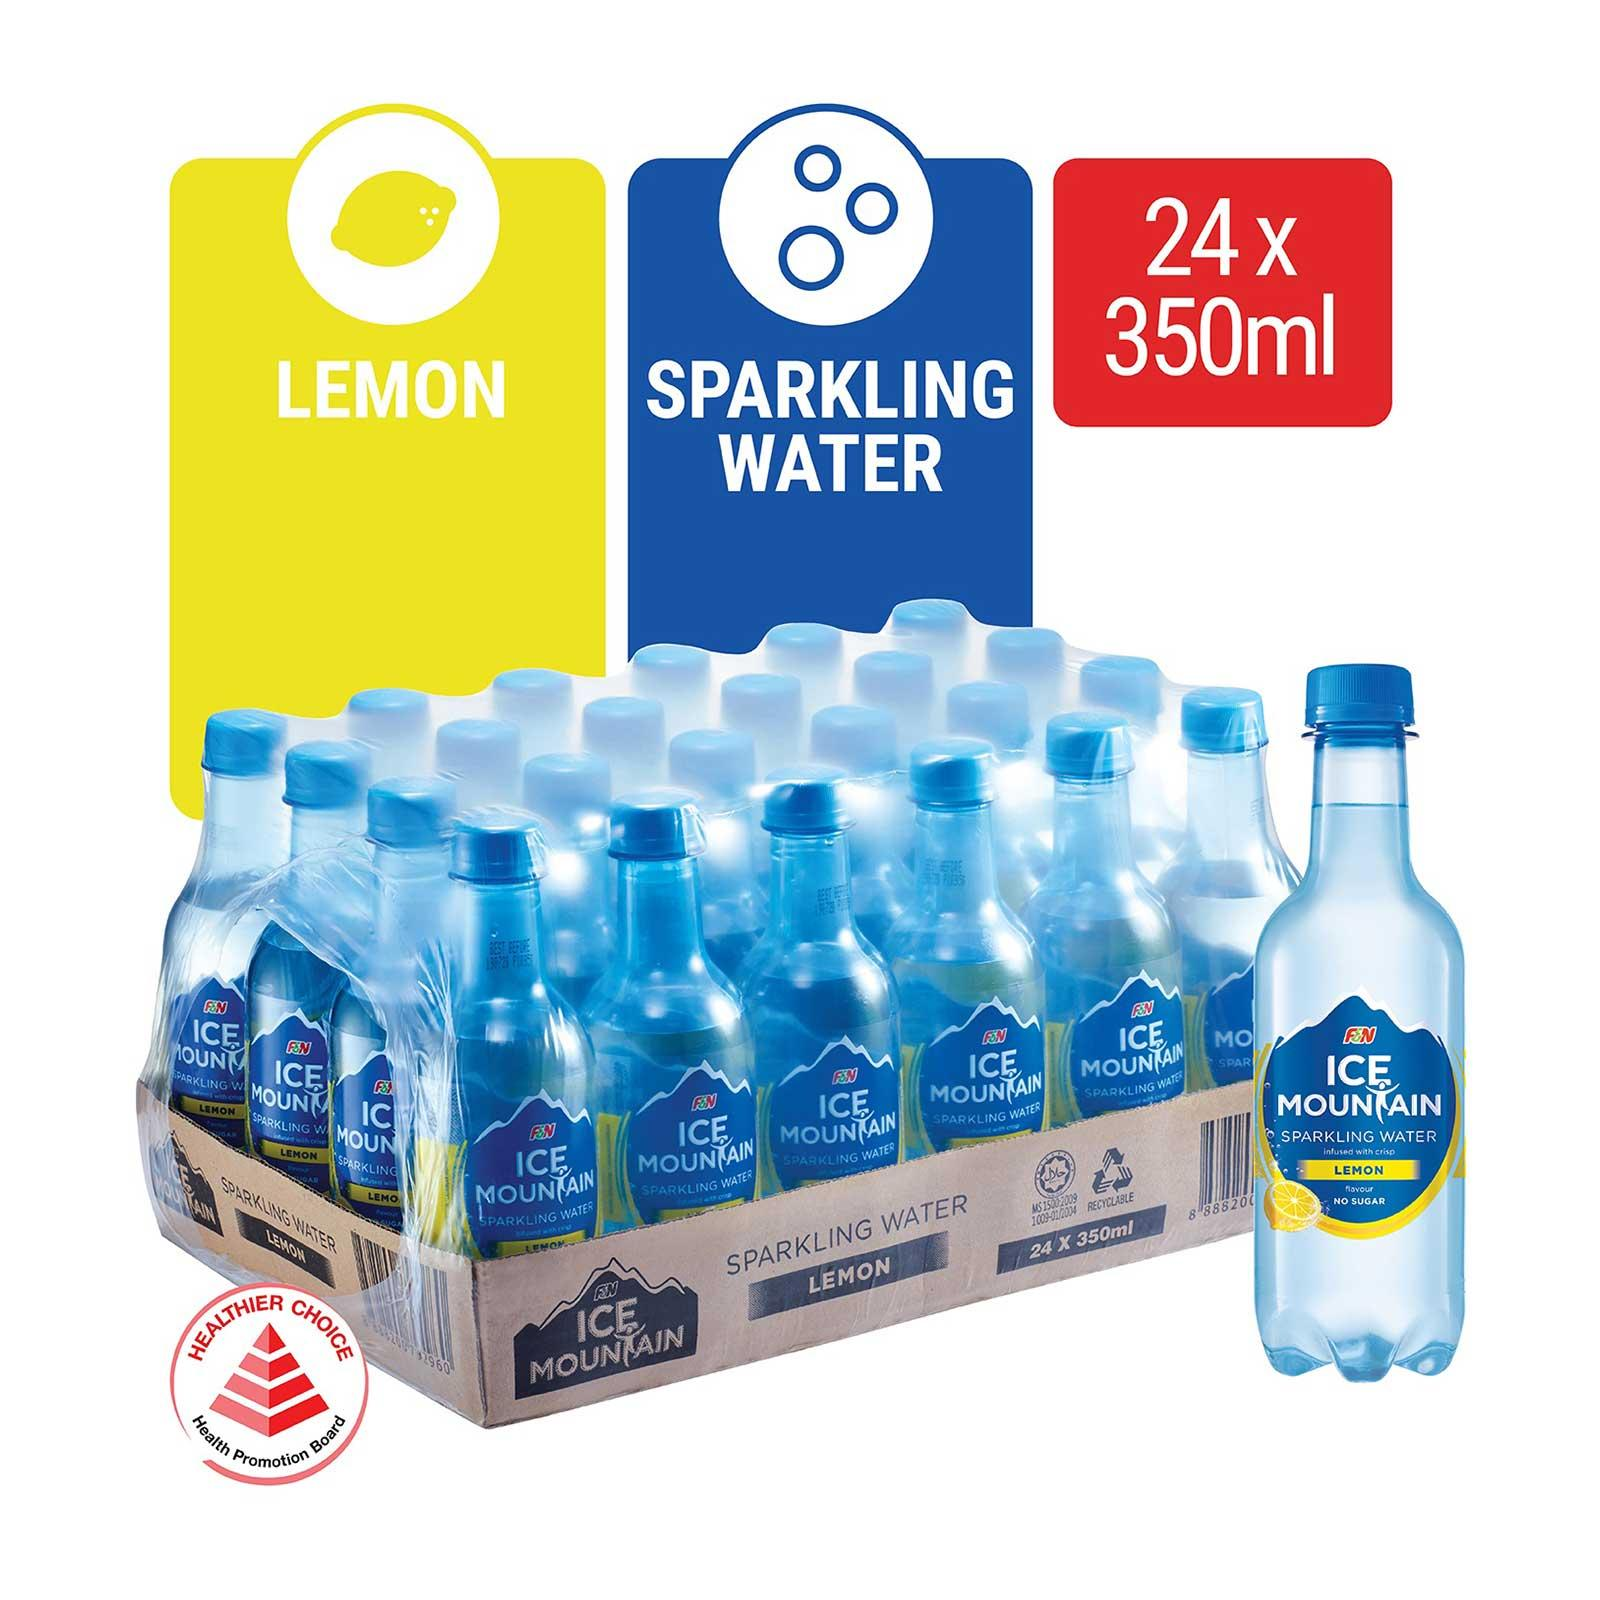 Ice Mountain Sparkling Water Lemon - Case